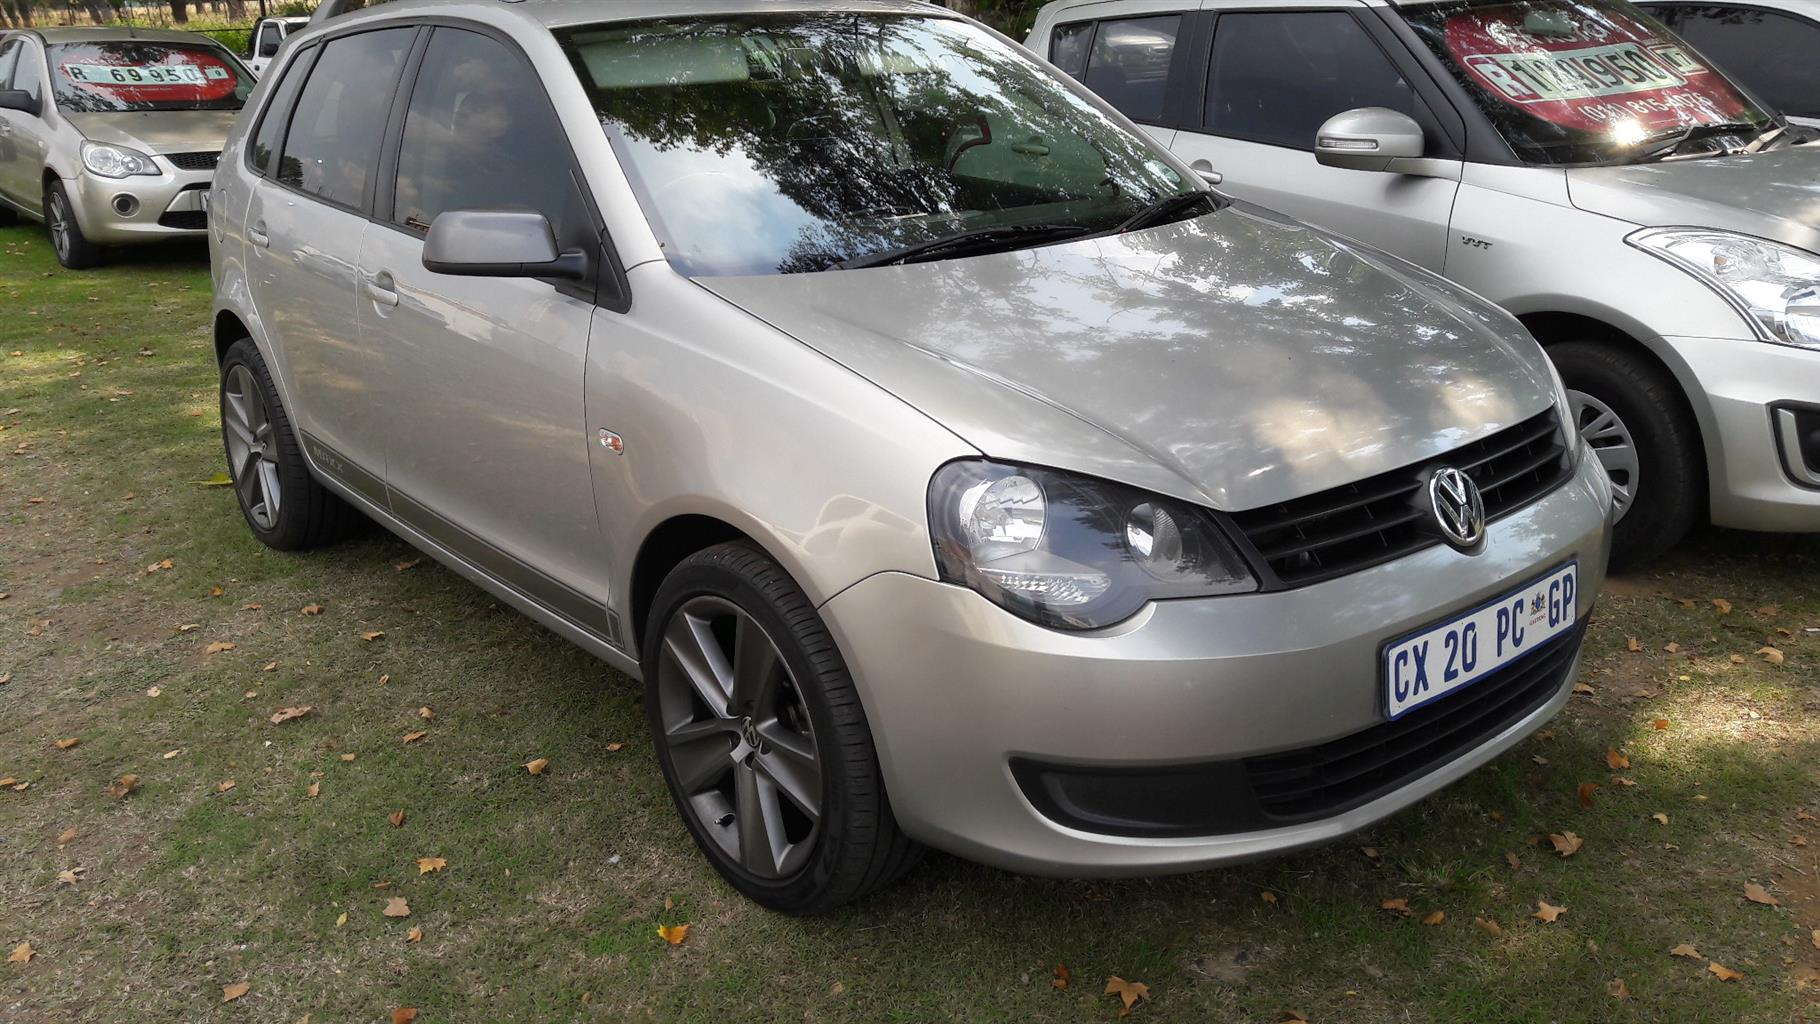 2014 VW Polo Vivo hatch 5-door Maxx POLO VIVO 1.6 MAXX (5DR)